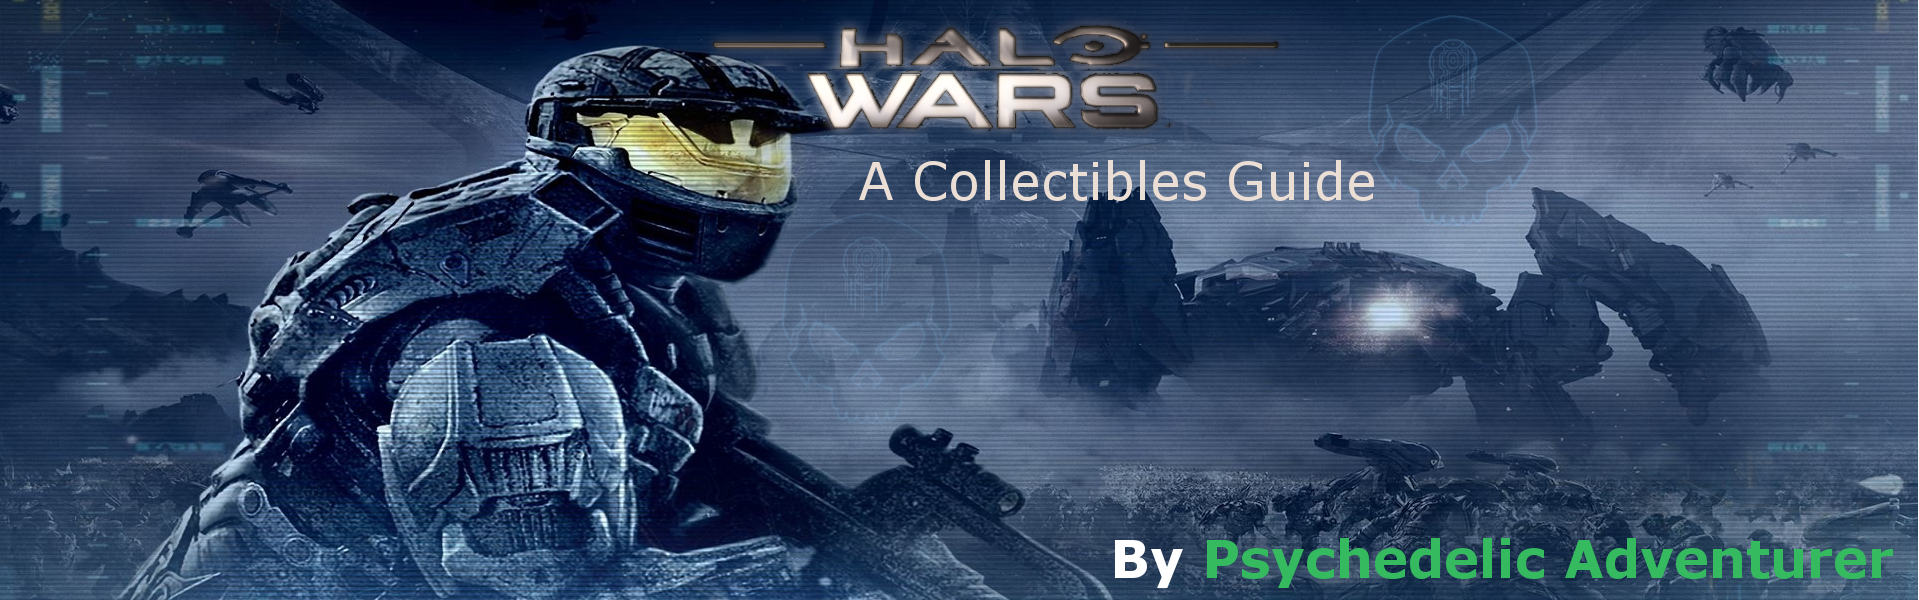 Steam Community :: Guide :: Halo Wars: Collectibles Guide